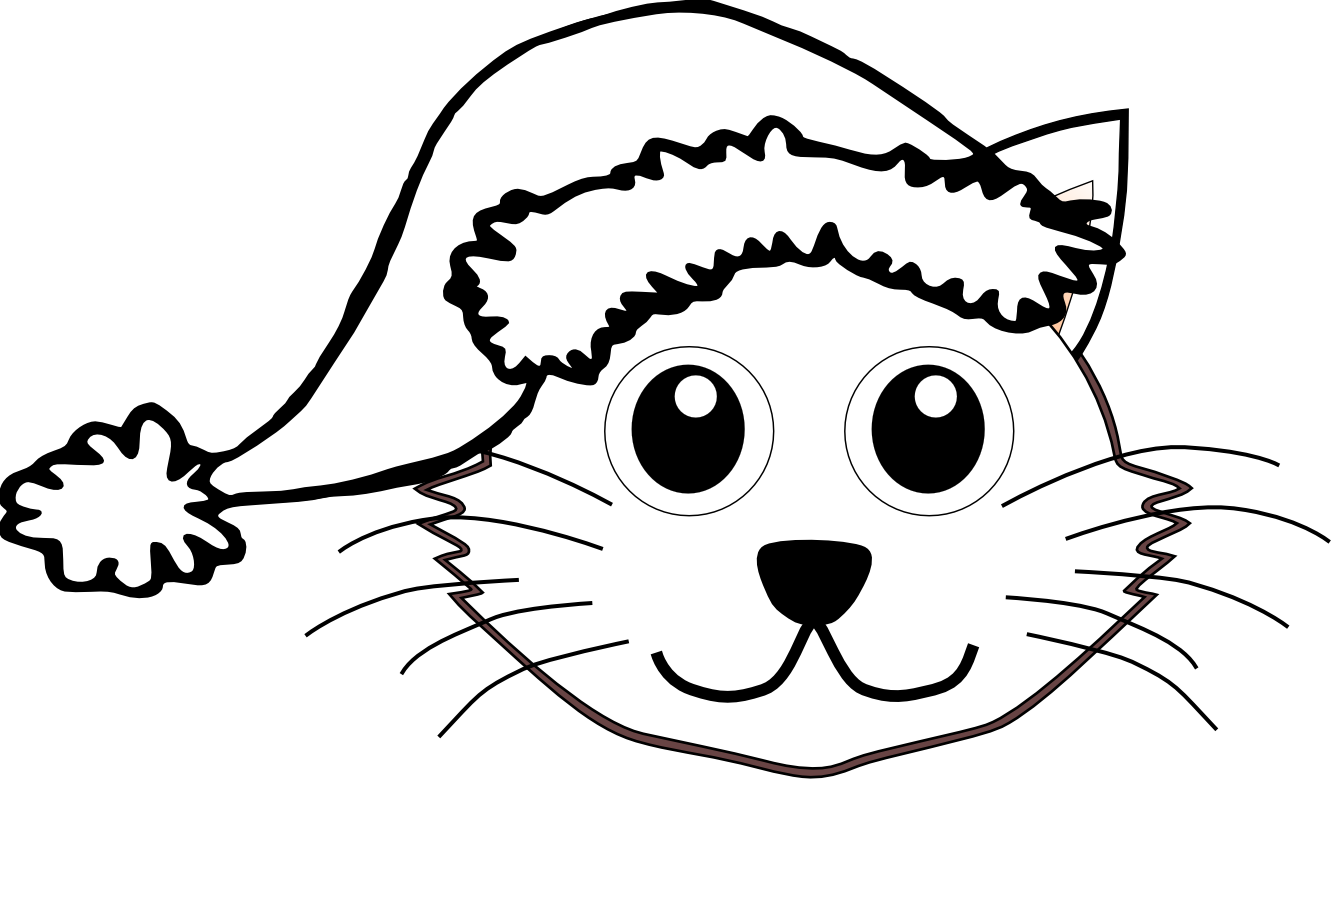 Cat in the hat reading book clipart image download Cat In The Hat Drawing at GetDrawings.com | Free for personal use ... image download